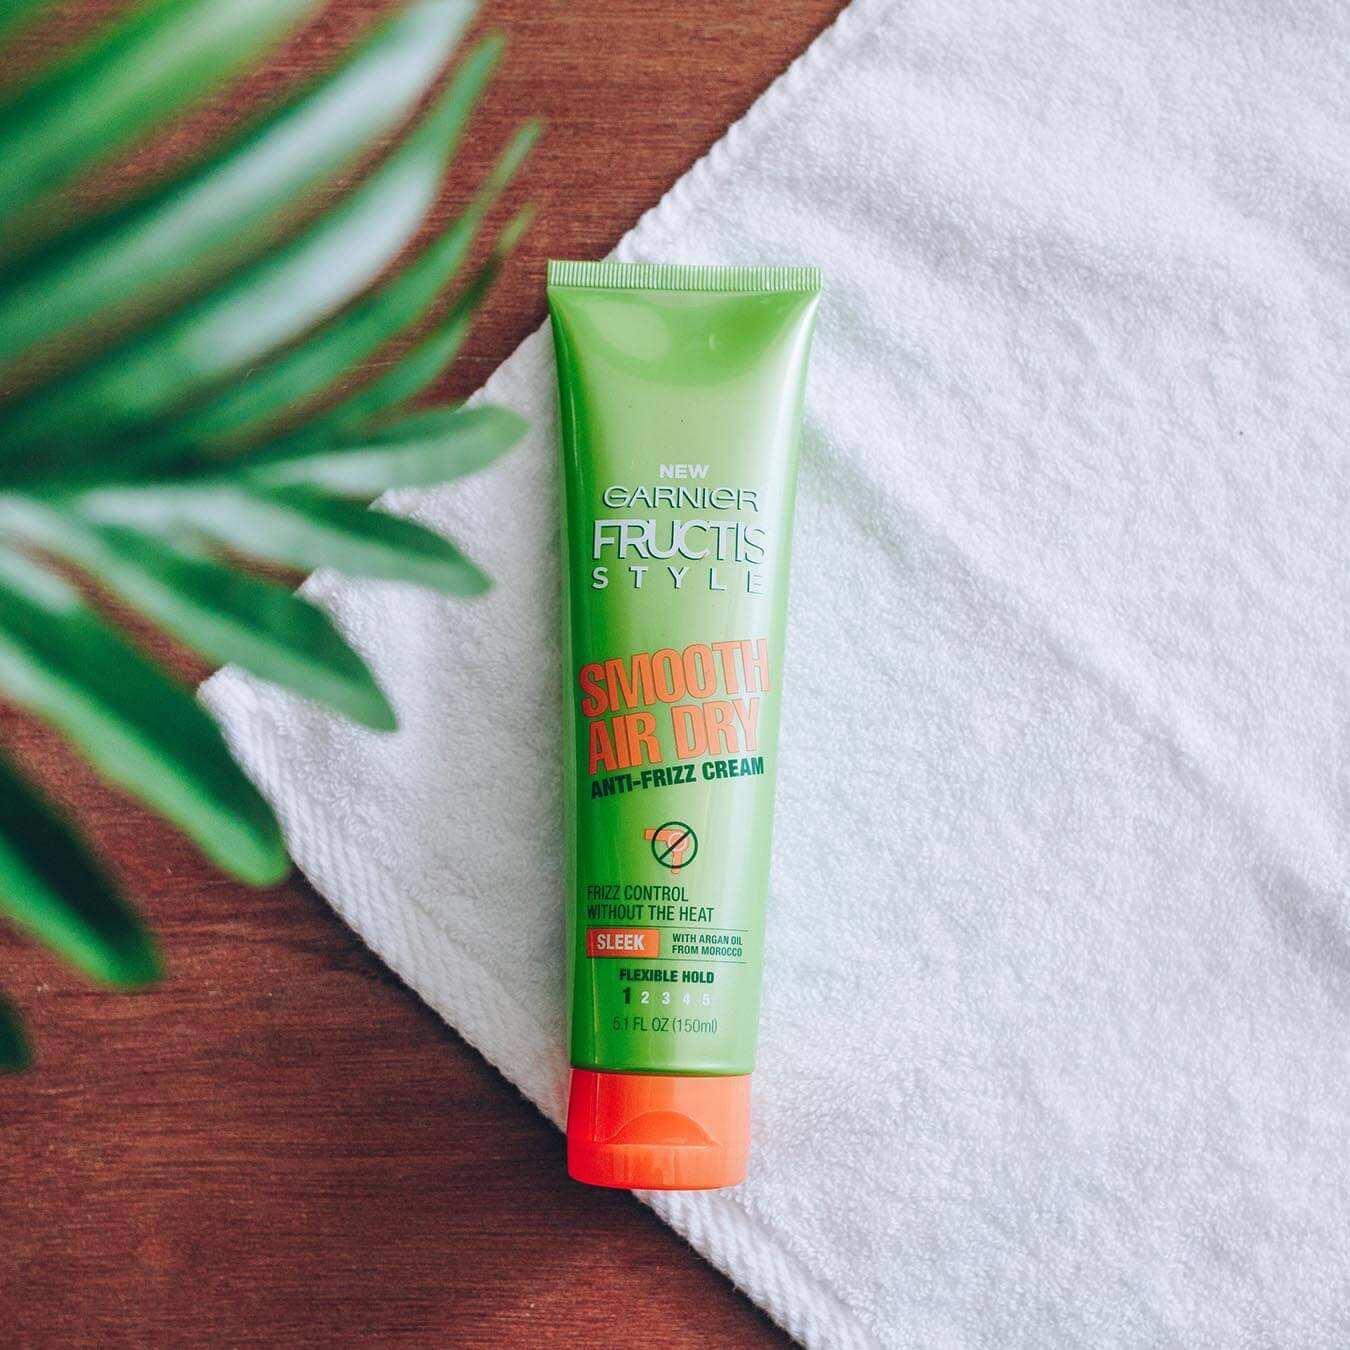 Garnier Fructis Style Smooth Air Dry Anti-Frizz Cream on a white hand towel on wood with a branch of leaves in the foreground.